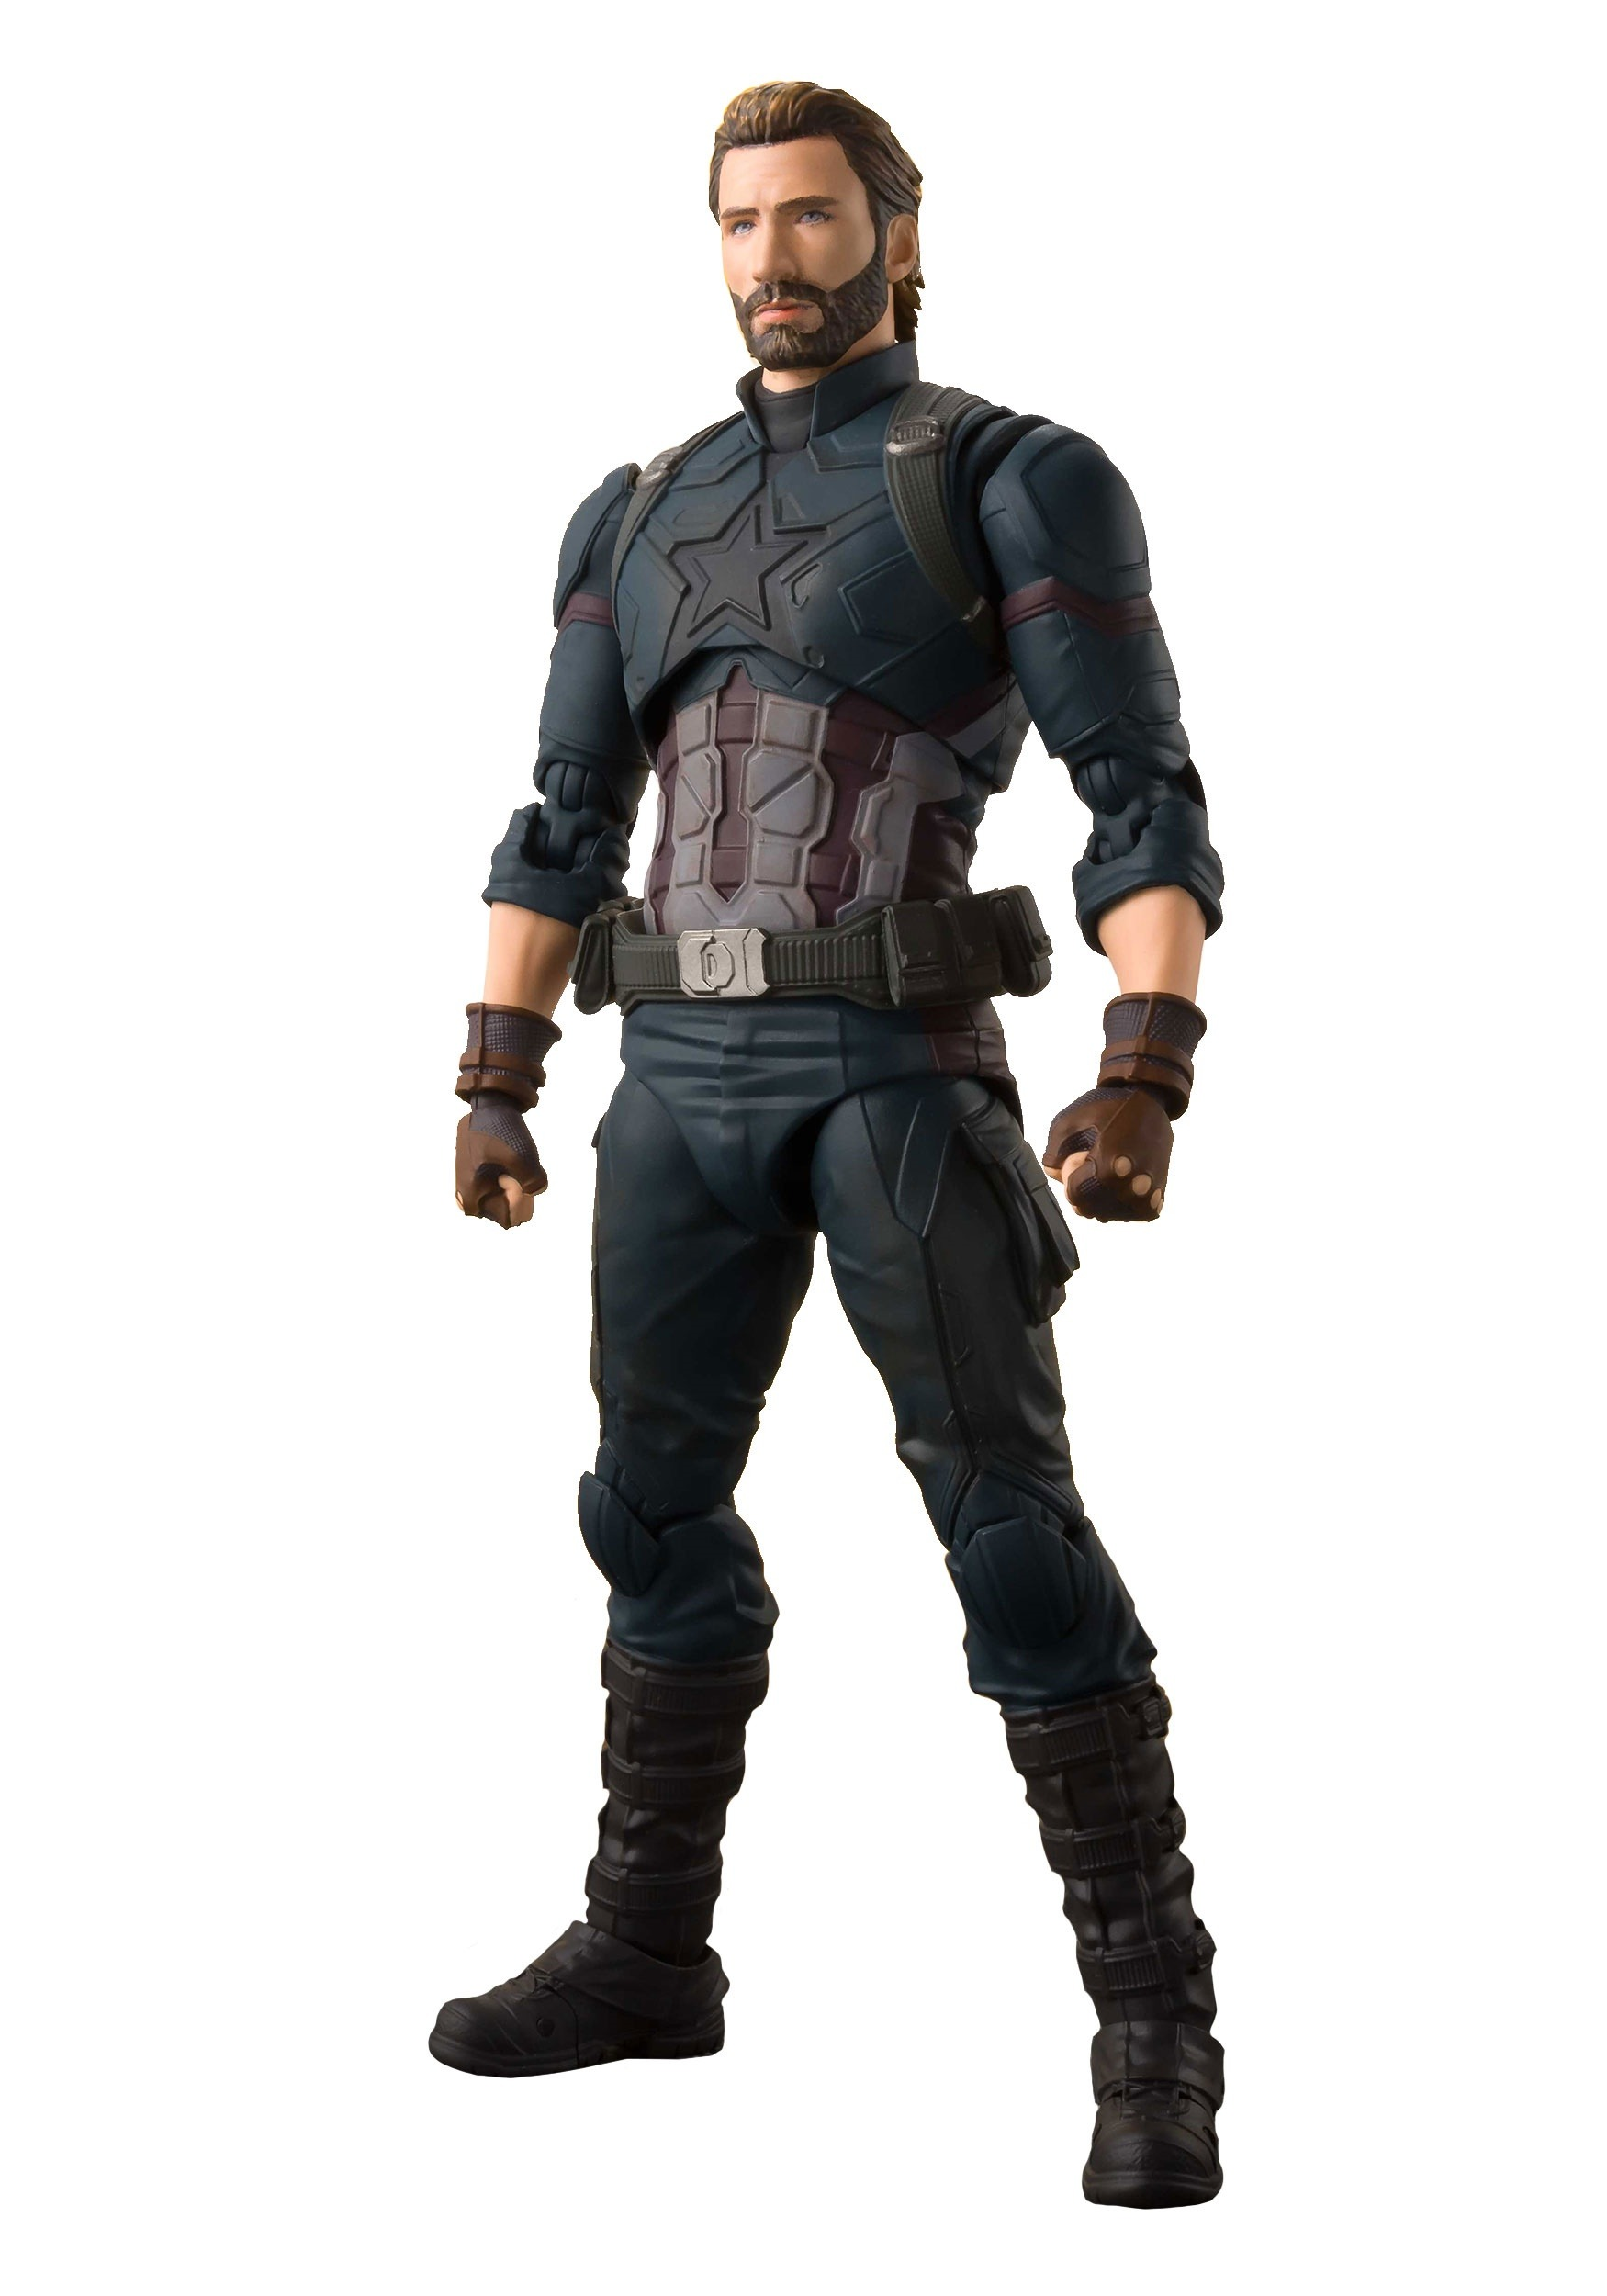 Avengers:_Infinity_War_Captain_America_Bandai_S.H._Action_Figure